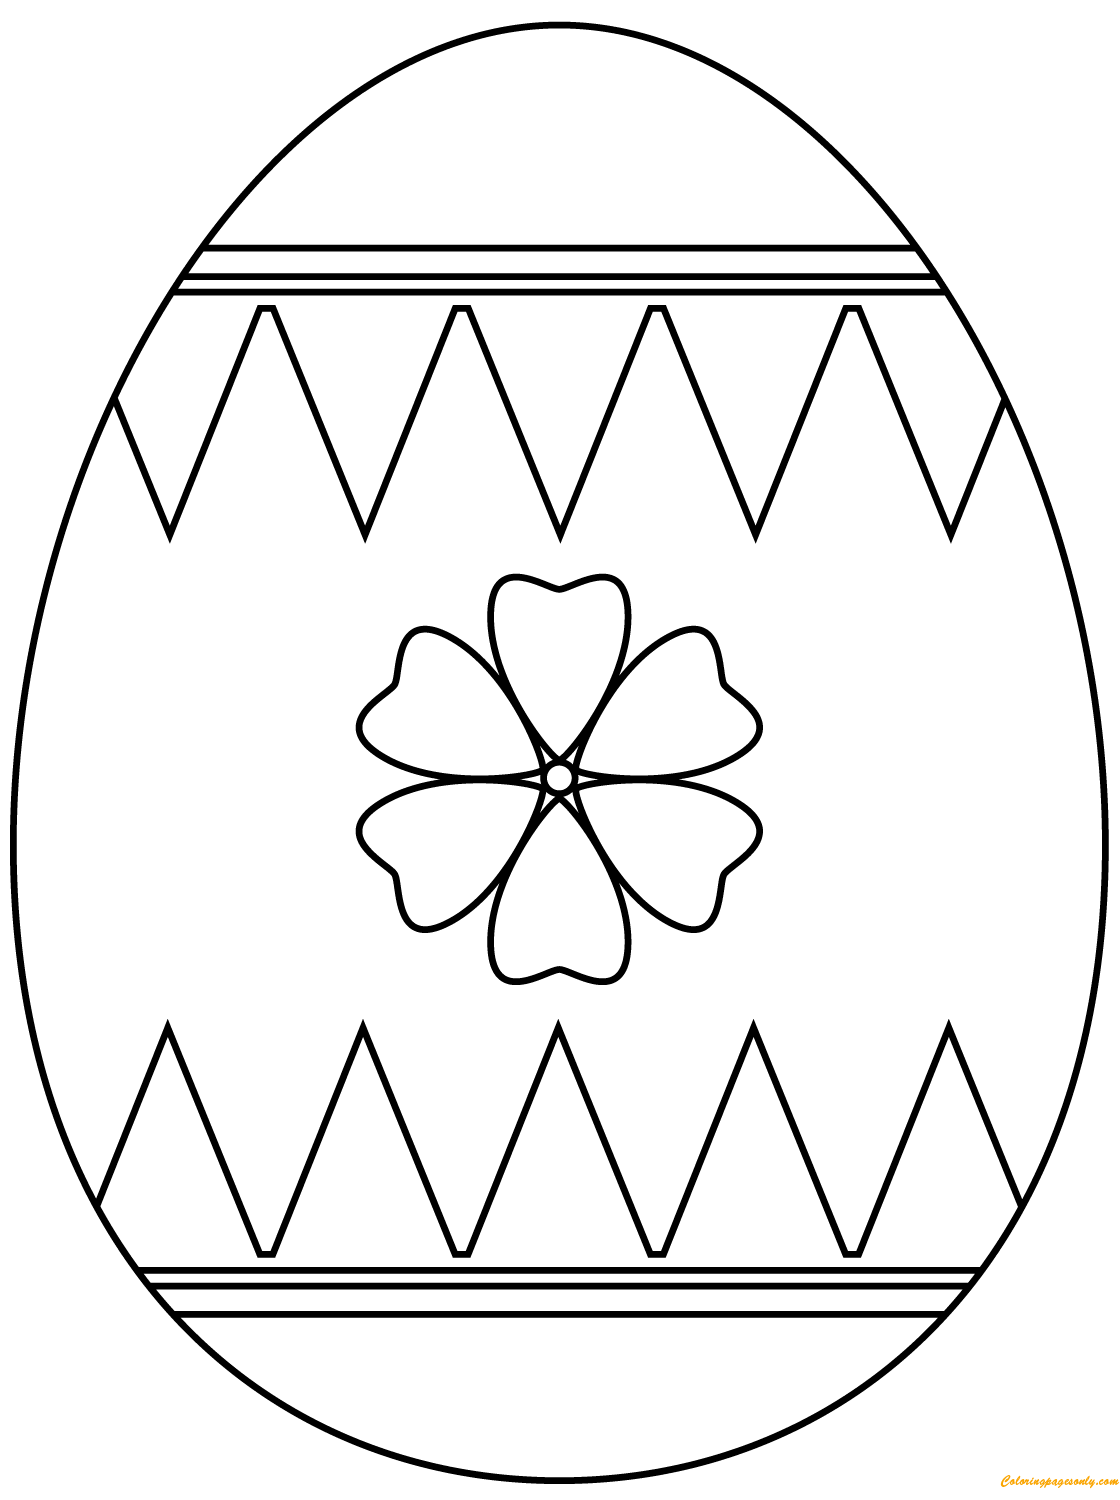 coloring pages easter eggs to decorate printable easter chick egg decorating coloring pages decorate to eggs pages coloring easter